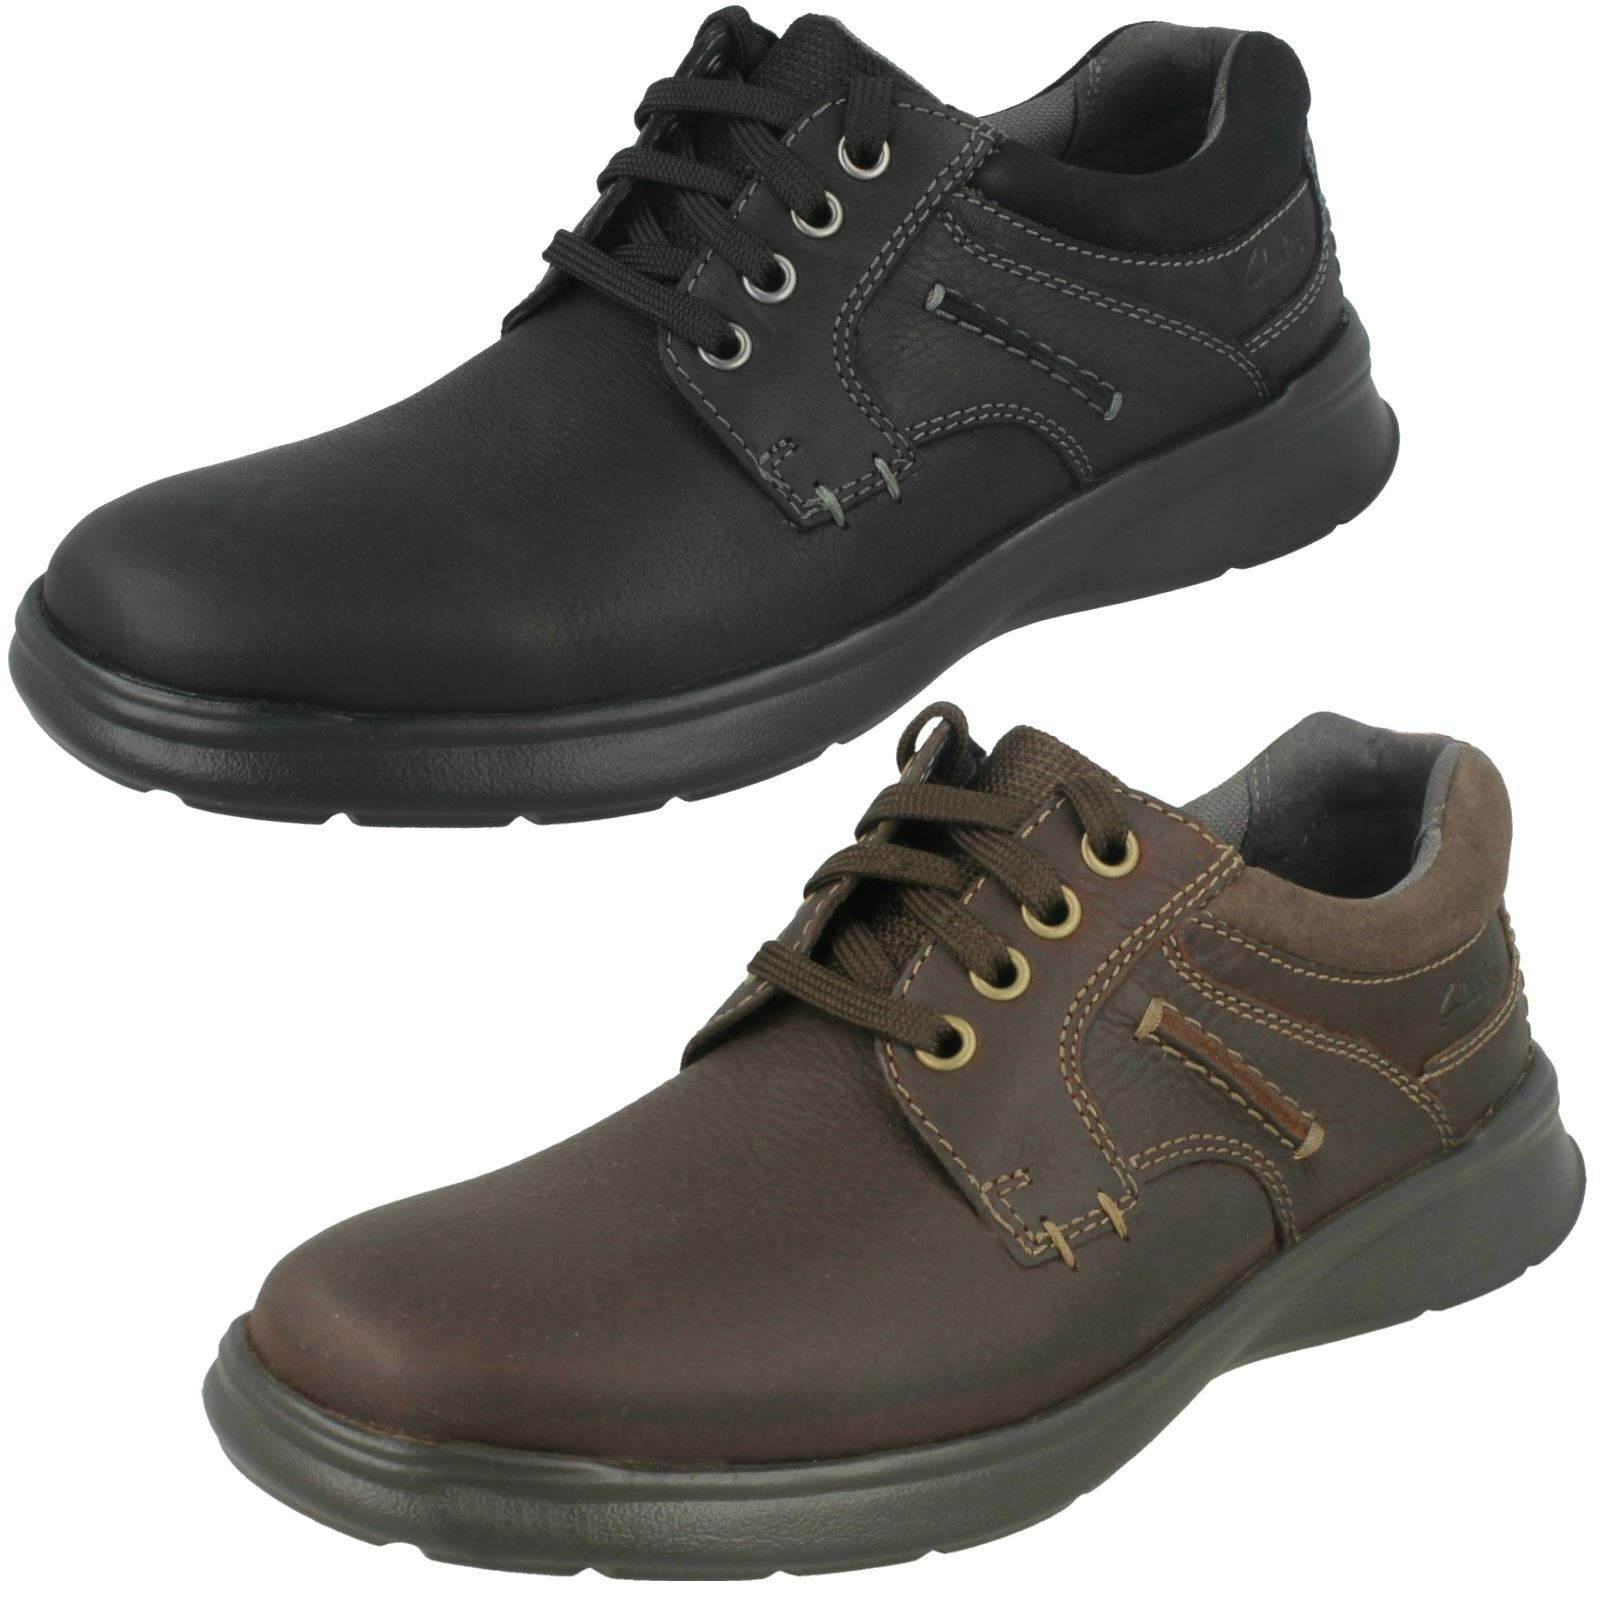 Clarks Uomo Clarks  Casual Schuhes 'Cotrell Plain' b46242